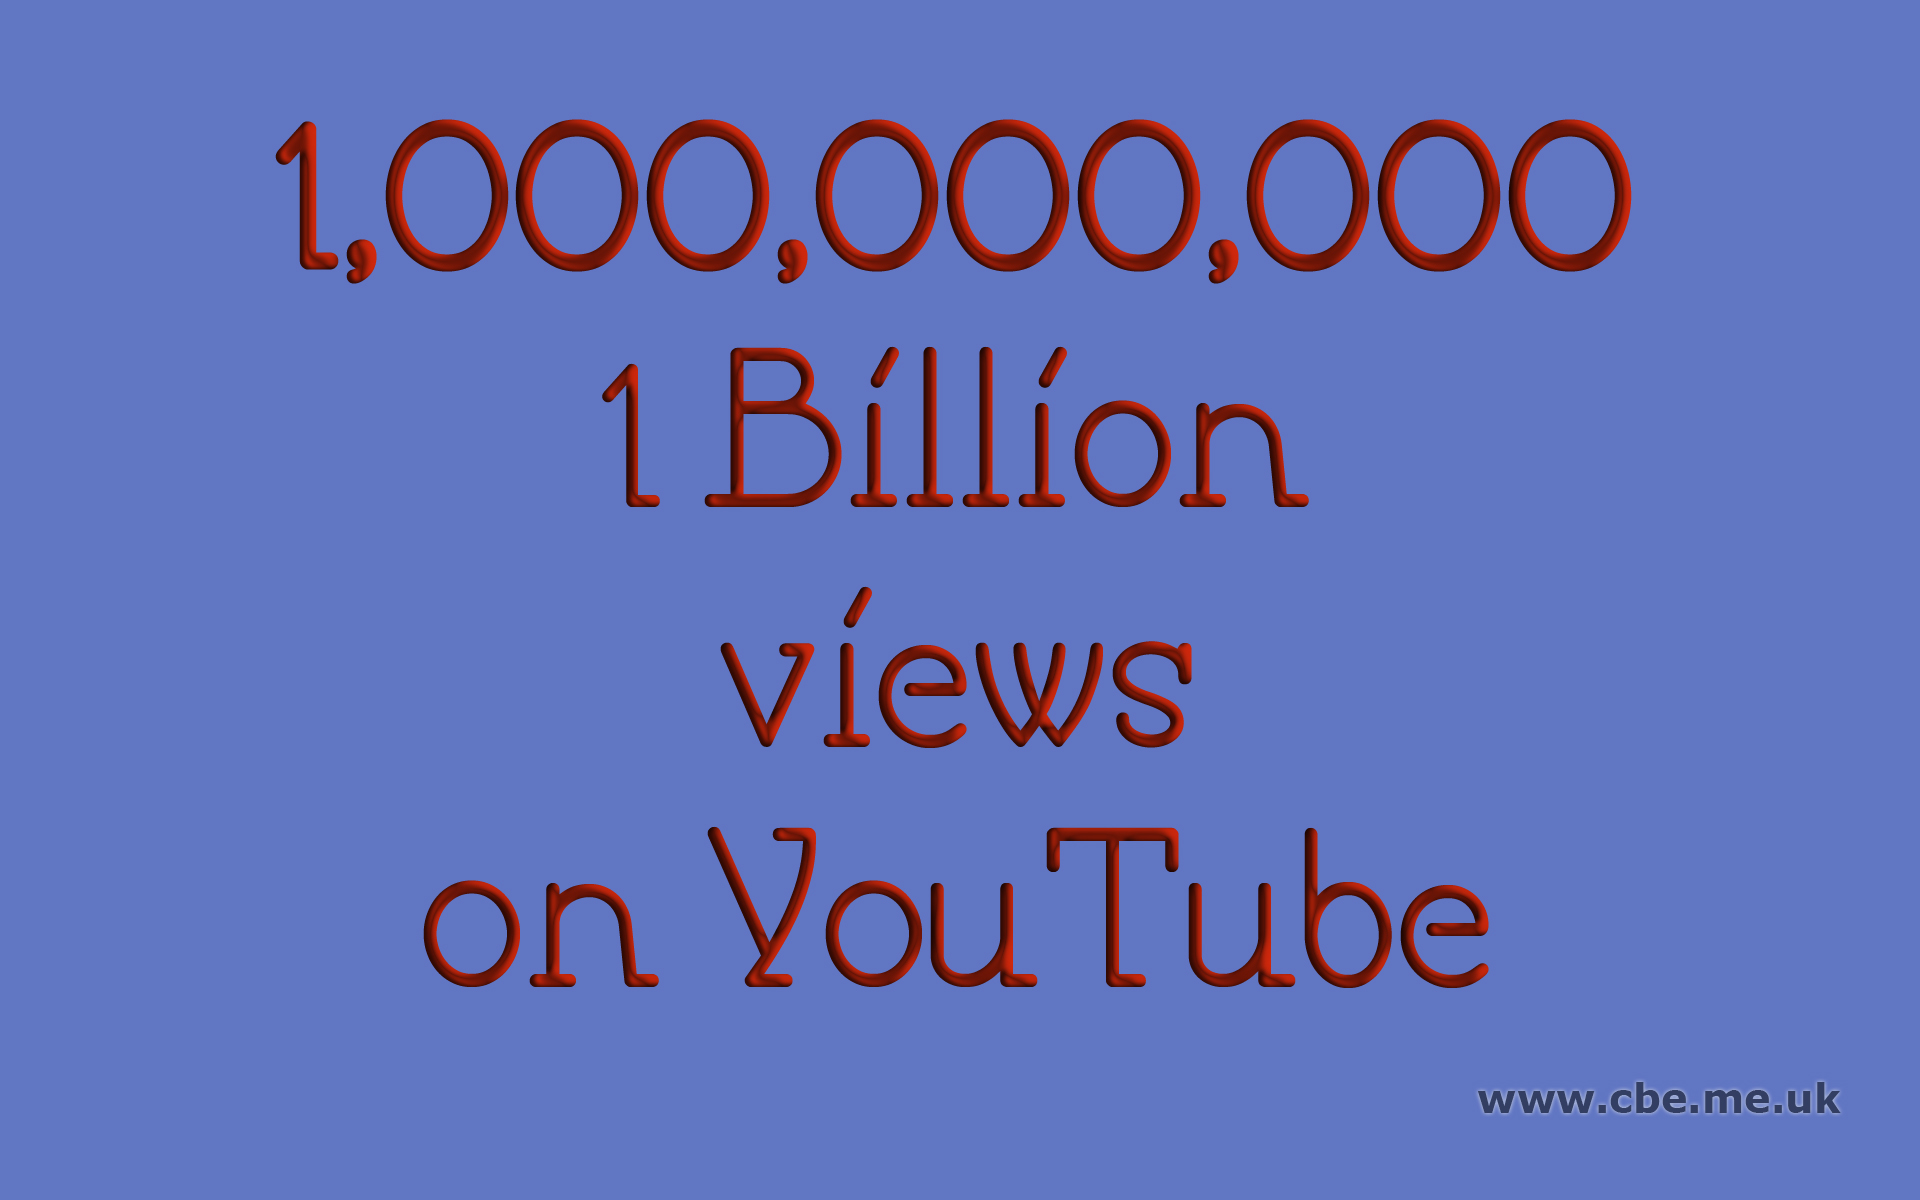 2 billion video views party orgy 3